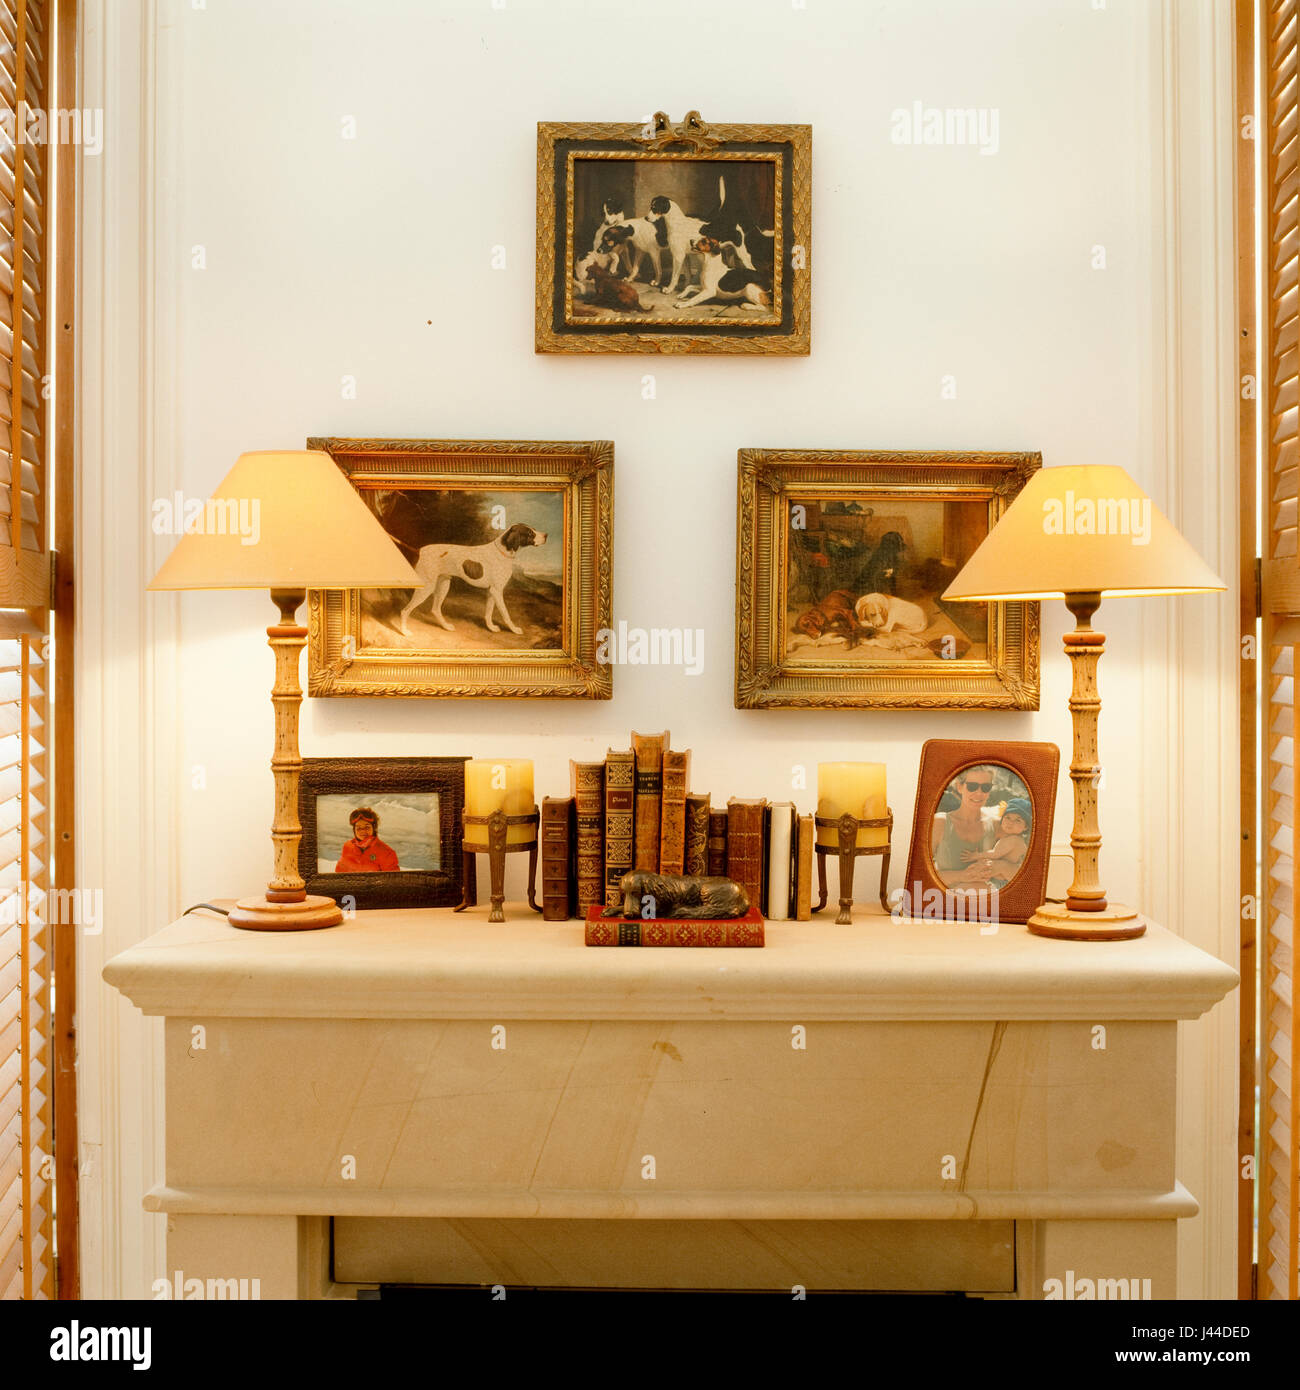 Mantelpiece with vintage lamps and art - Stock Image